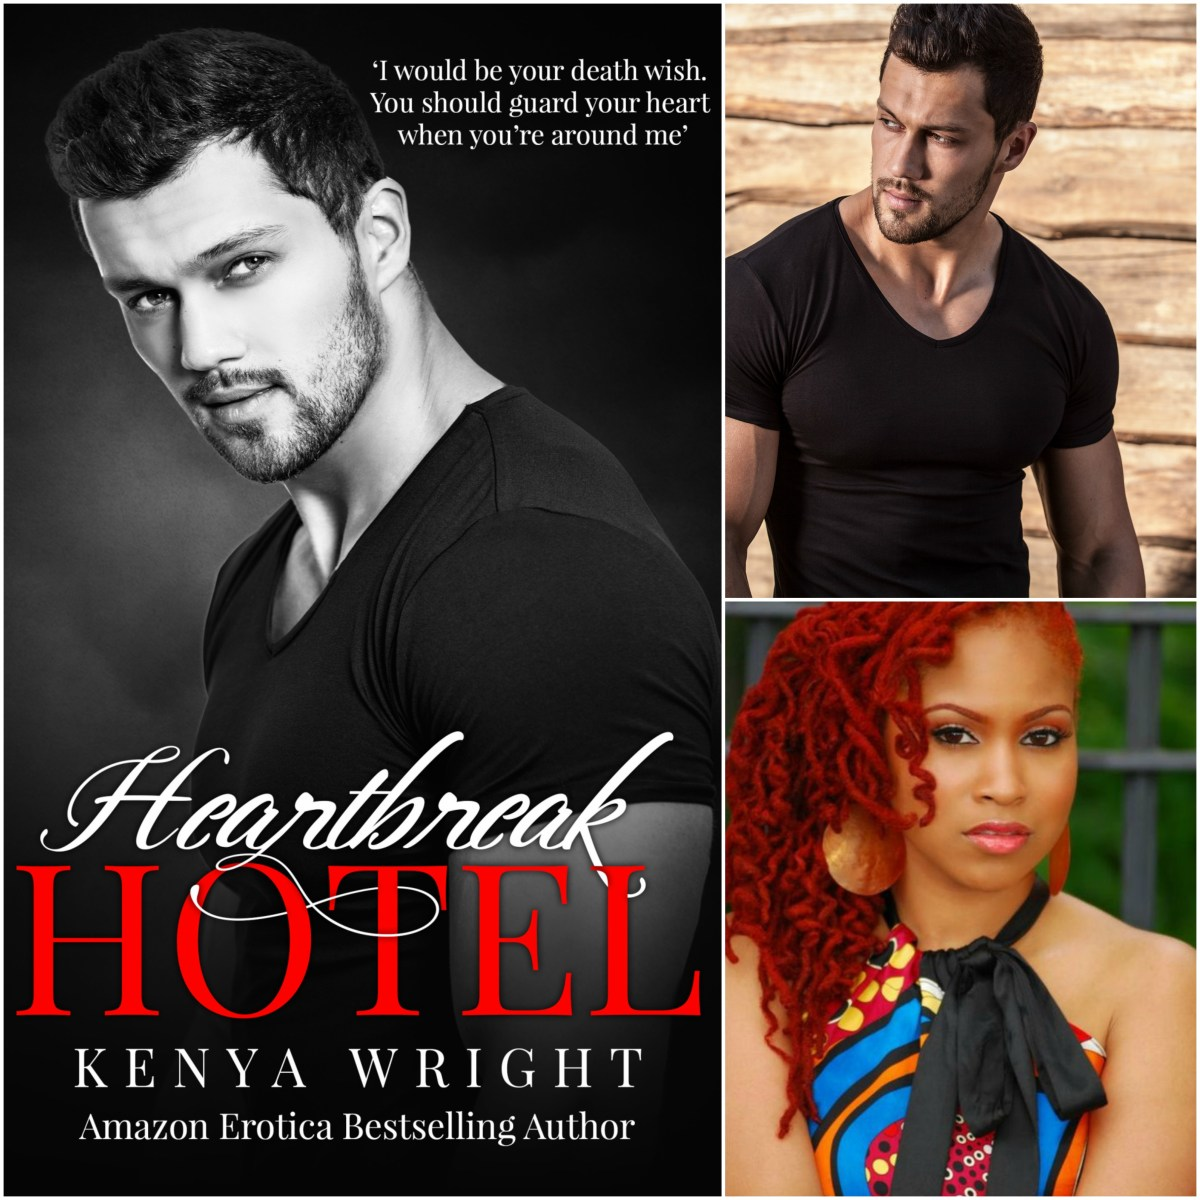 Heartbreak Hotel is LIVE!